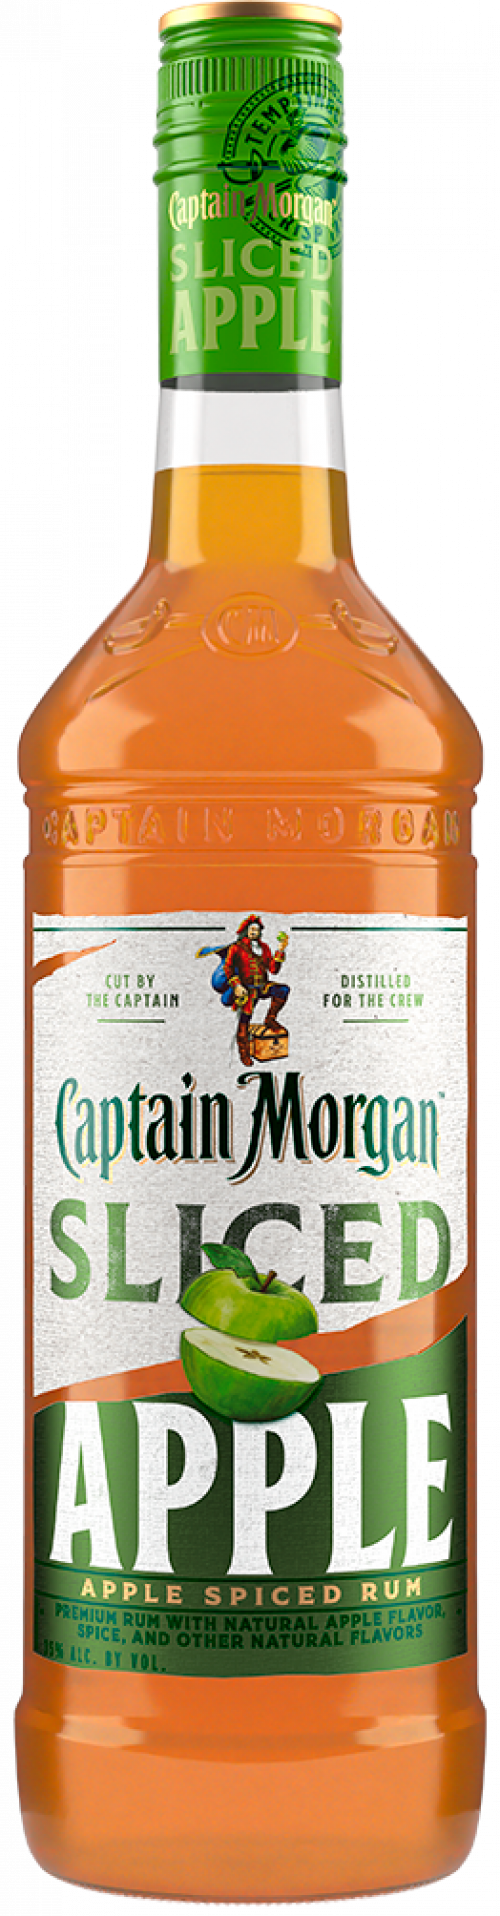 Captain Morgan Sliced Apple Spiced Rum 750ml